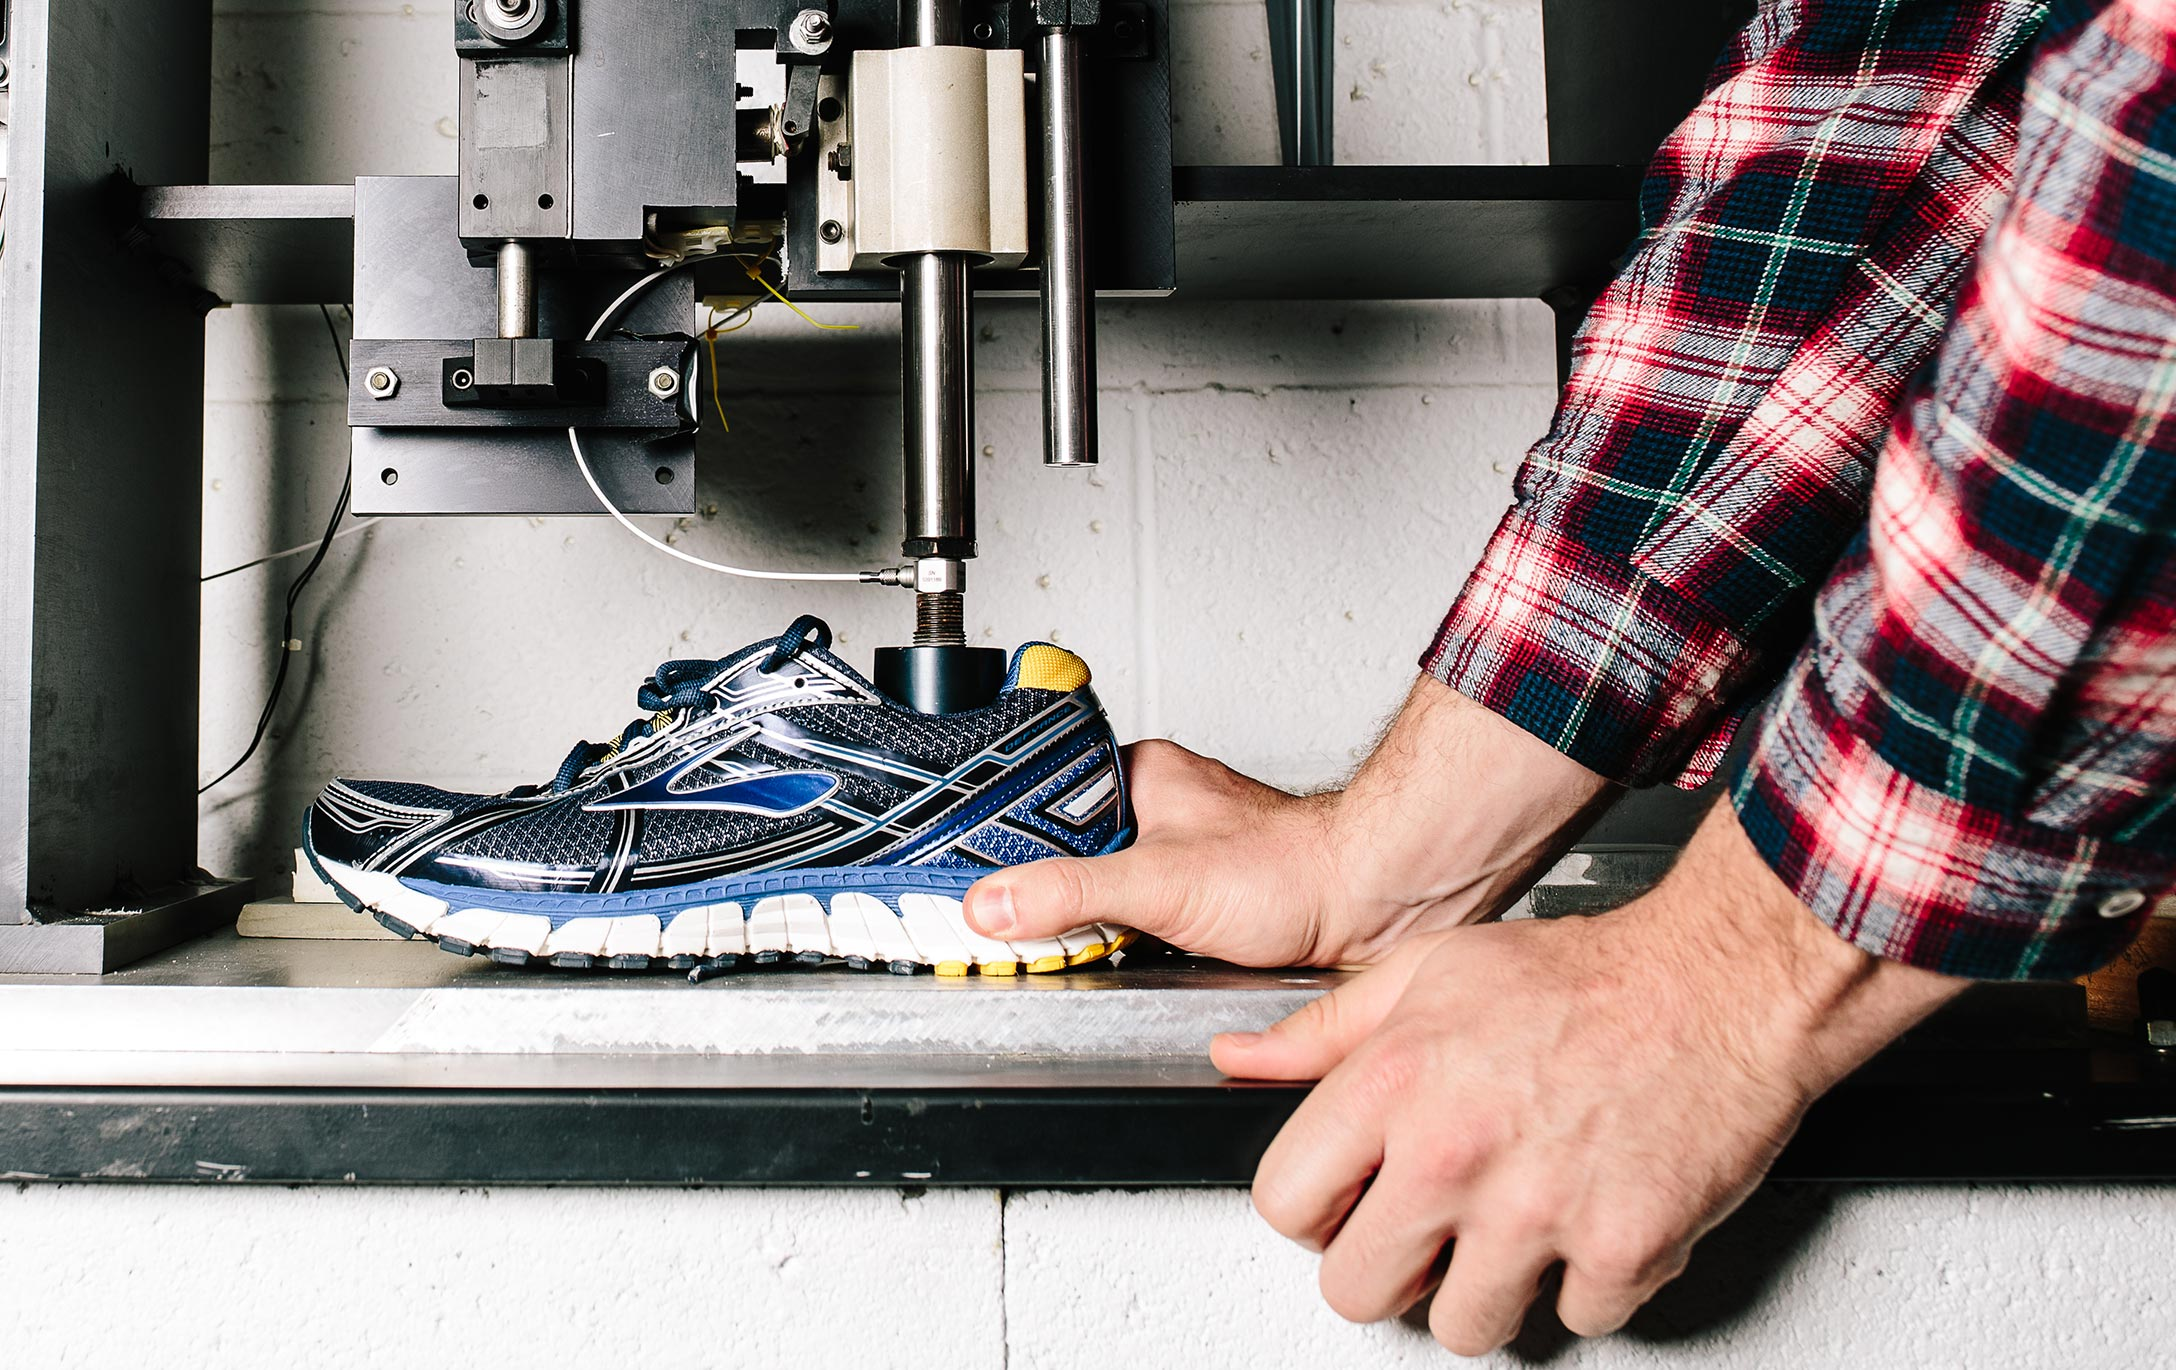 a hand holds an athletic shoe in a testing machine with metal hydraulic equipment placed inside the shoe opening